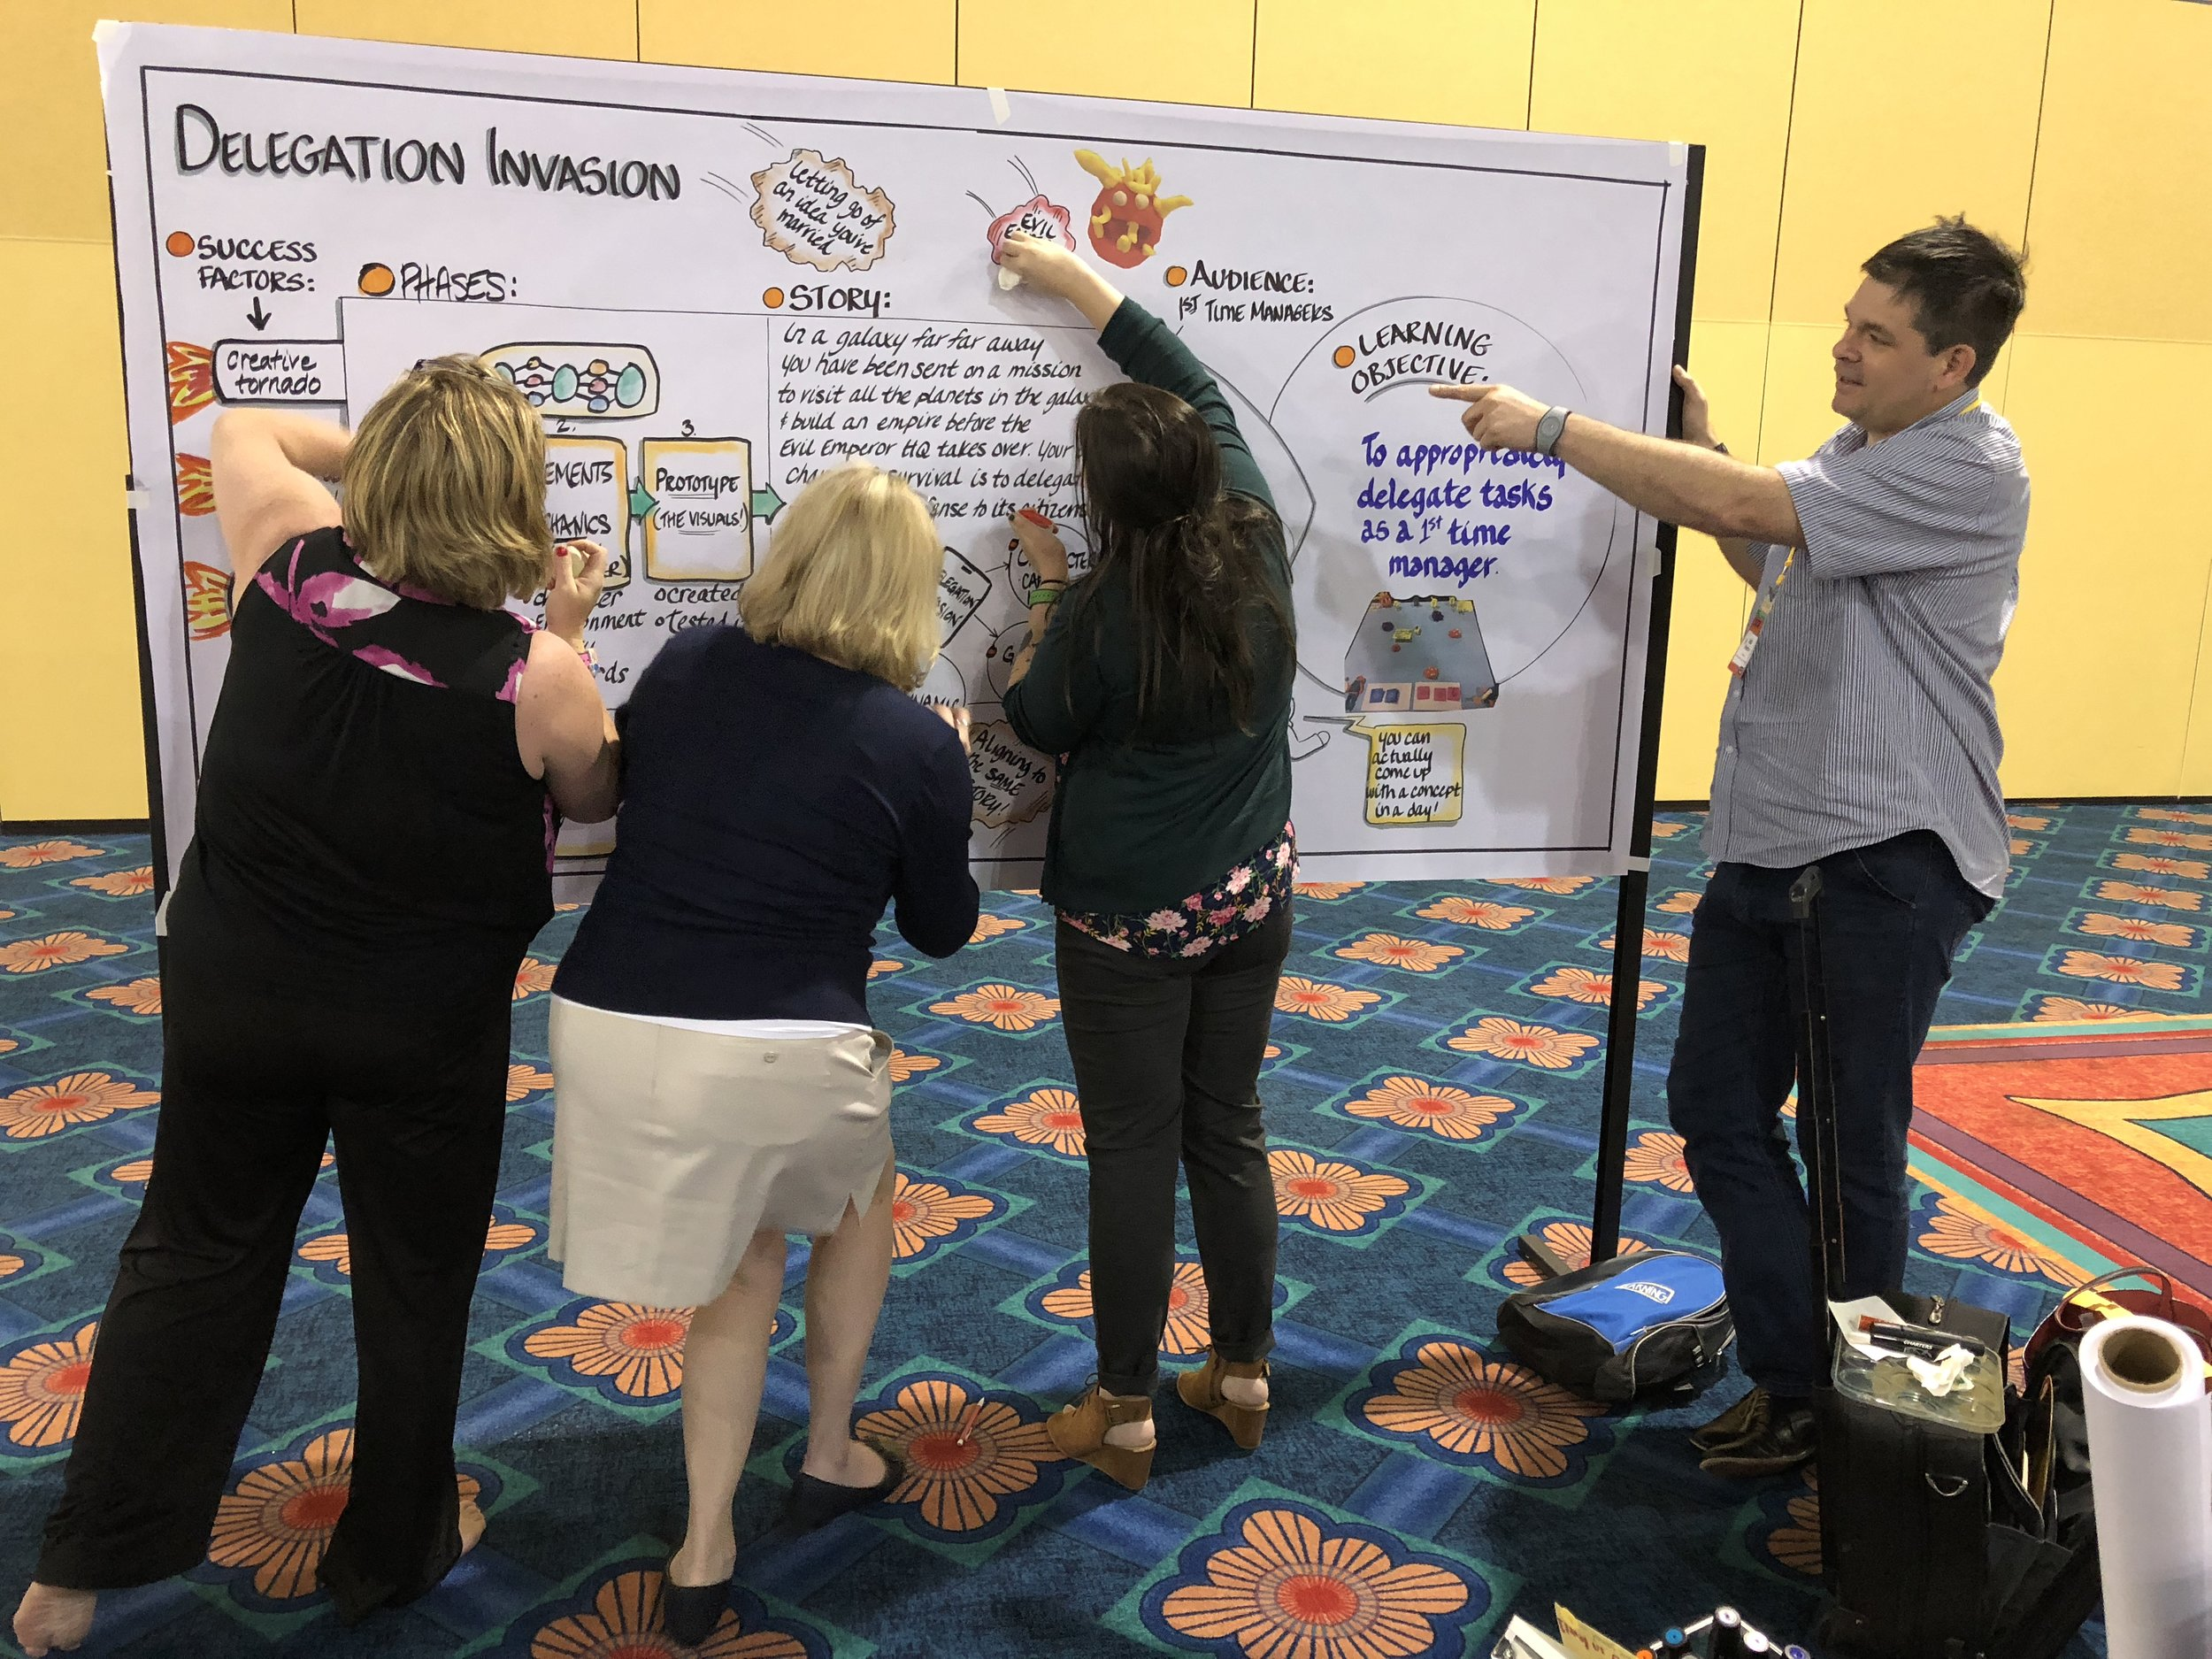 Learn how to make your meetings visible!   Add simple graphic facilitation methodologies to your toolbox to enhance your own training and facilitation techniques.